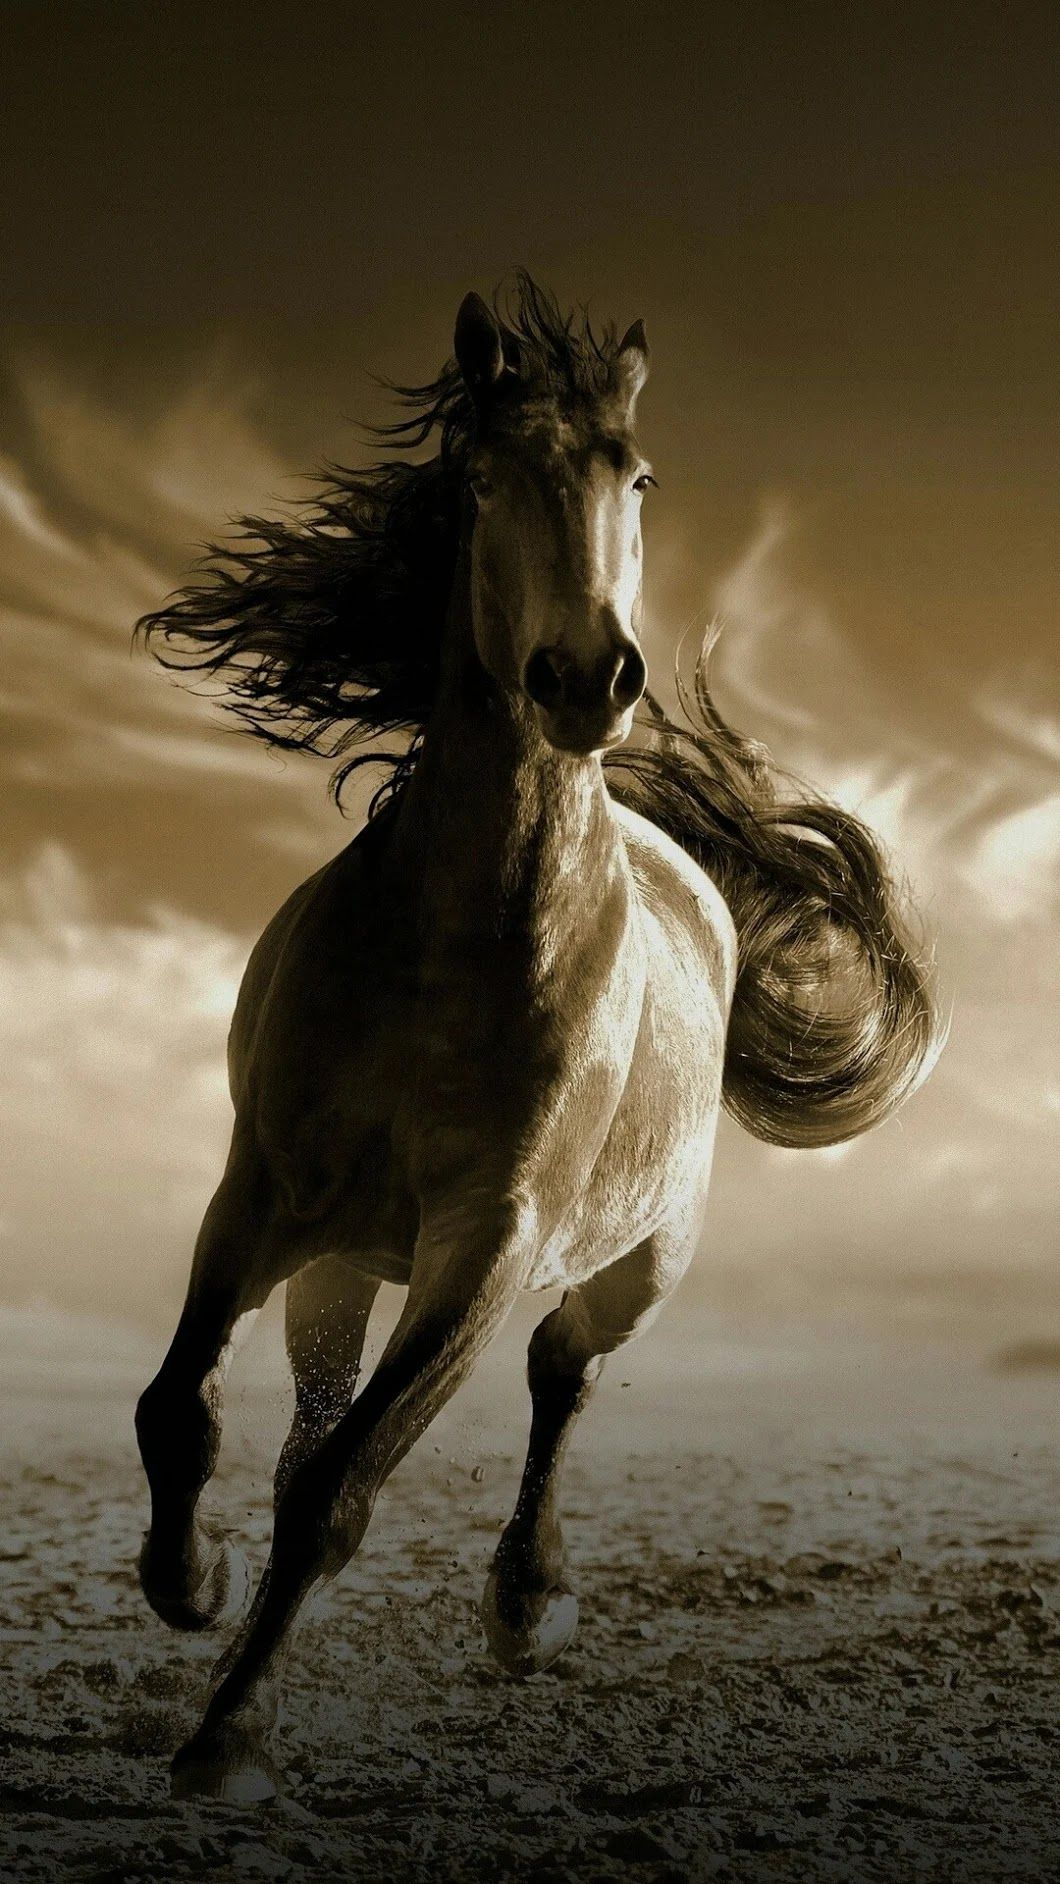 Hd Horses Wallpapers Posted By Michelle Johnson